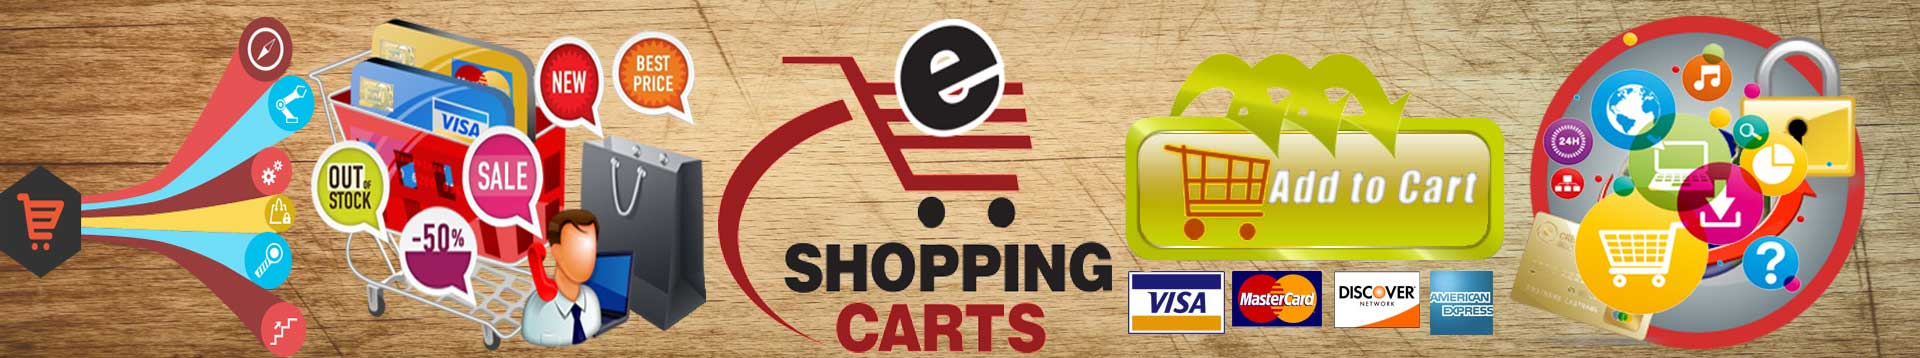 Shopping Cart Banners Laugh Banners